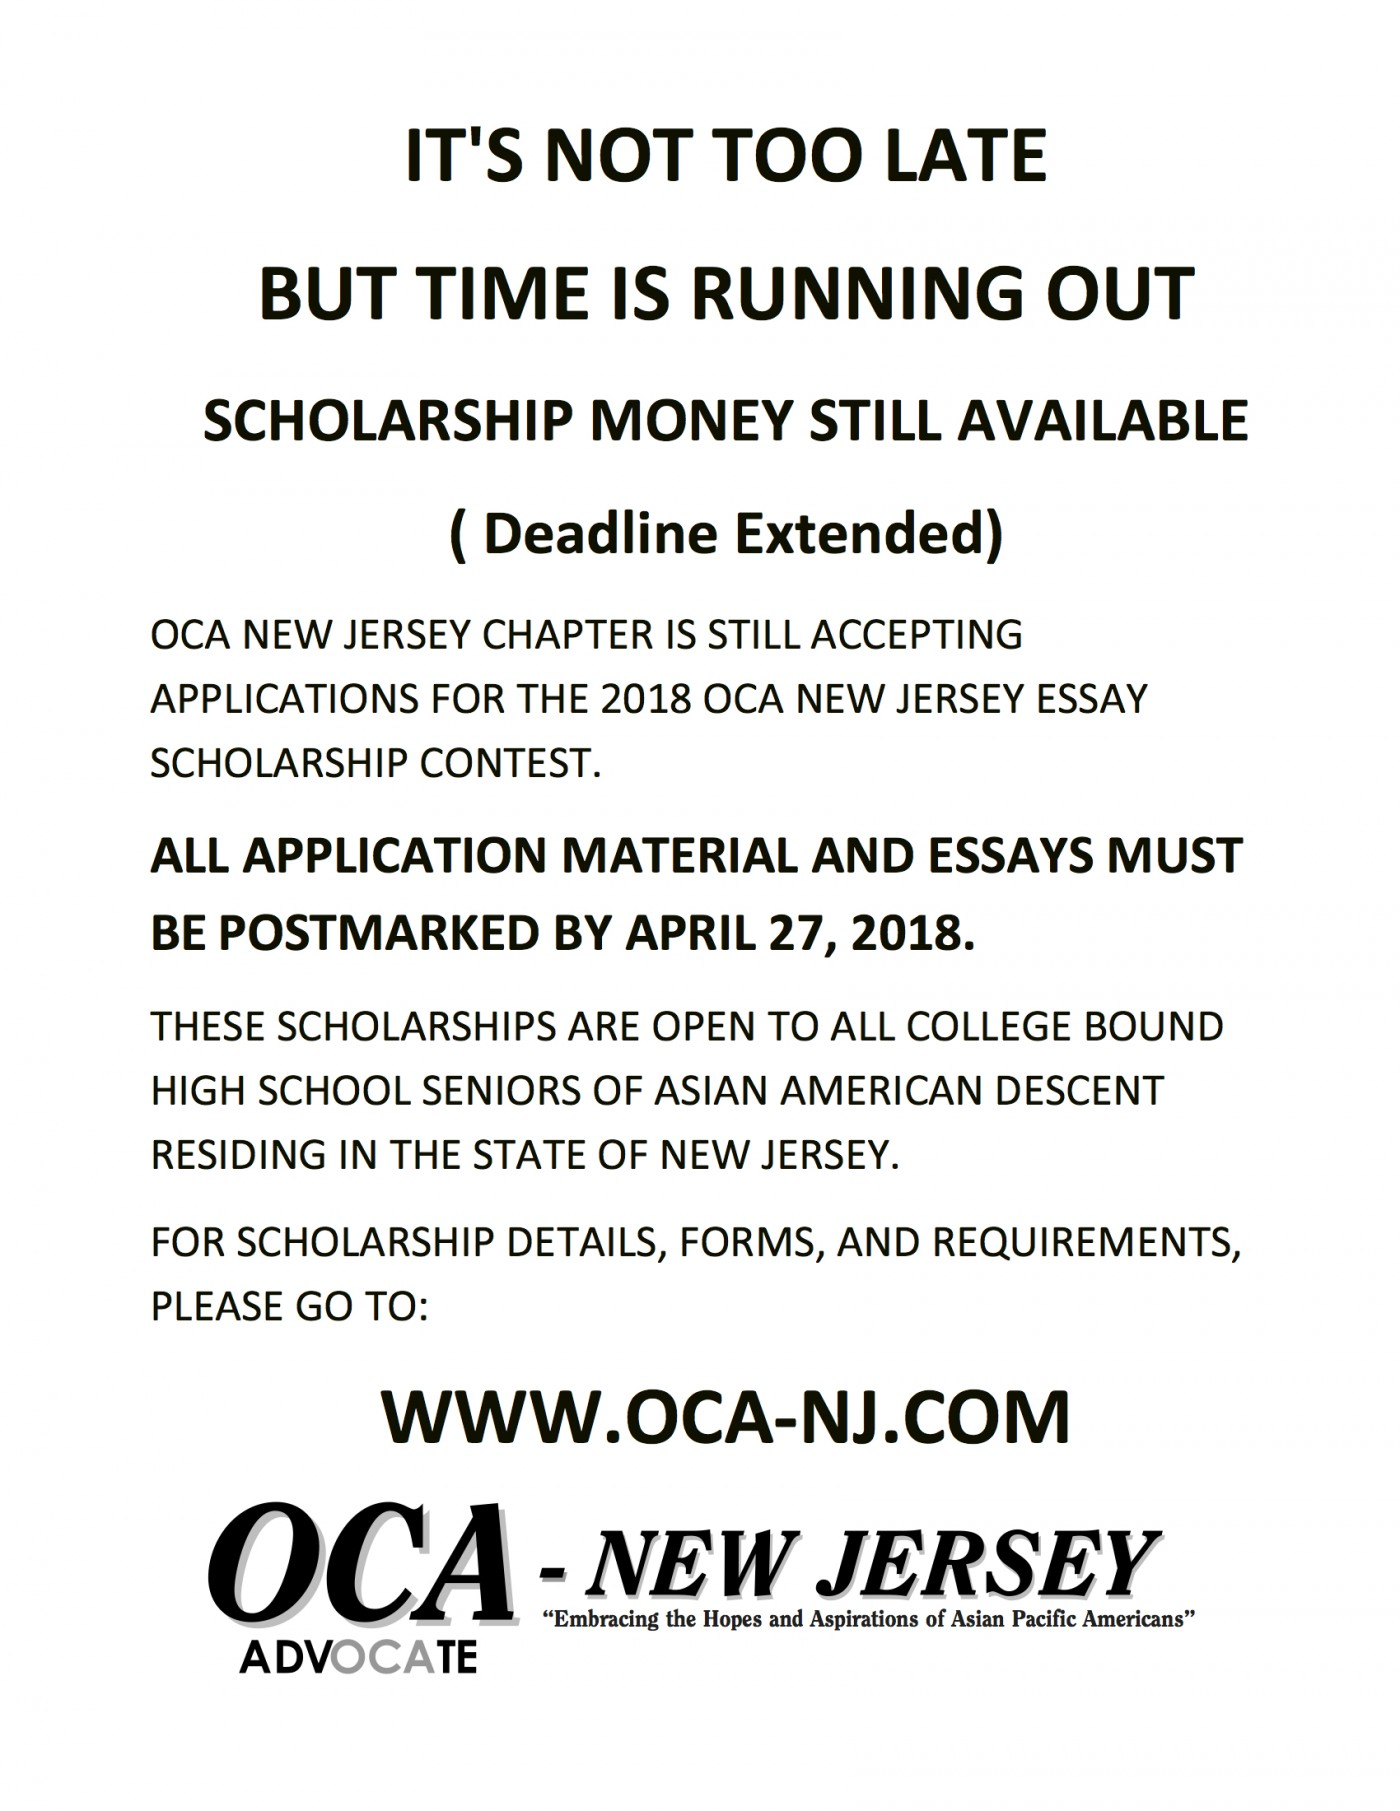 014 Essay Example Scholarships Entended Deadline Oca Nj Shocking For High School Students 2018 2019 1400